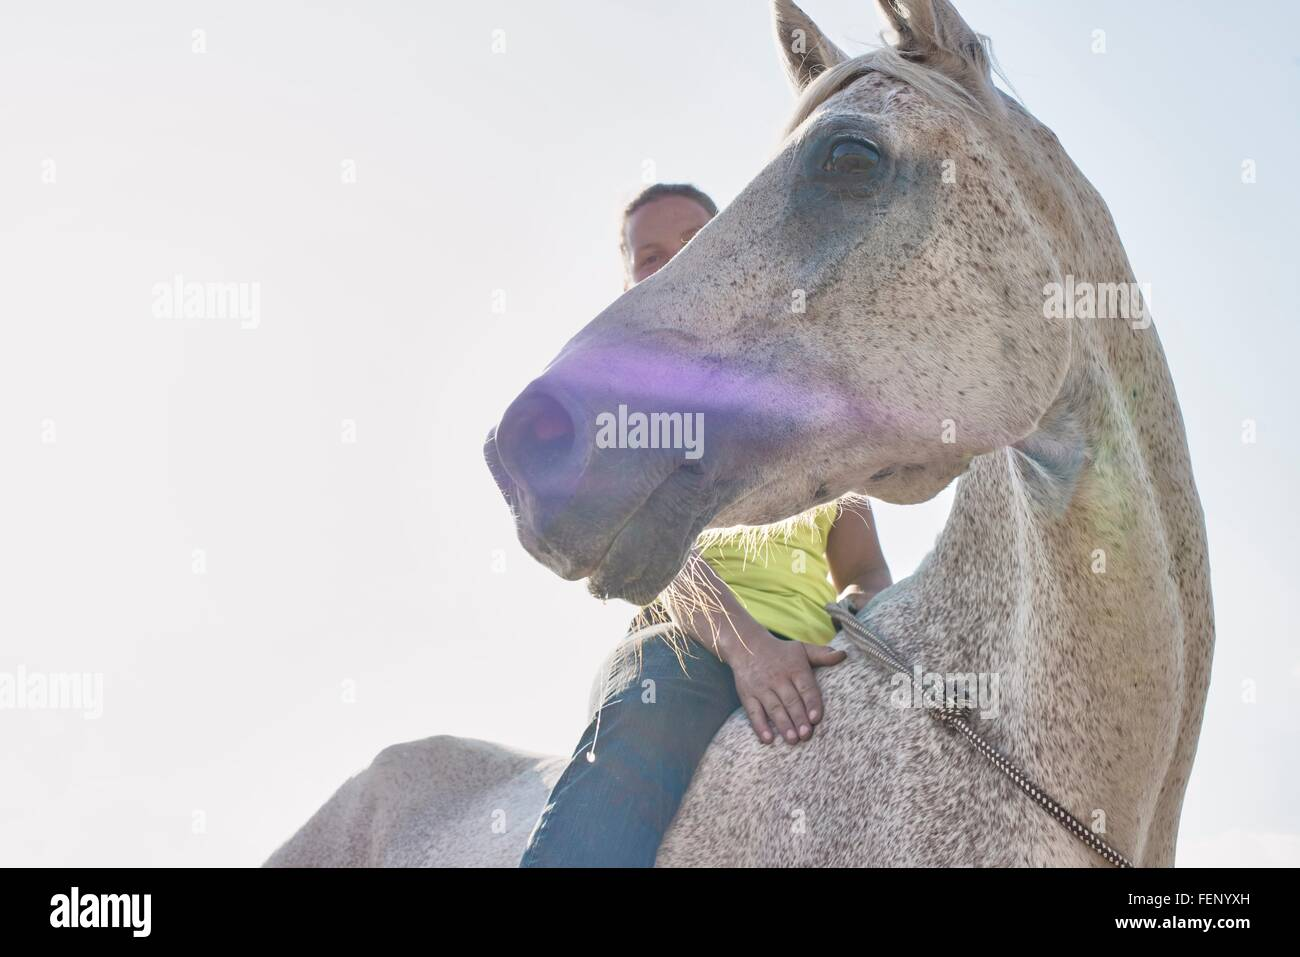 Low angle view of woman riding grey horse bareback - Stock Image